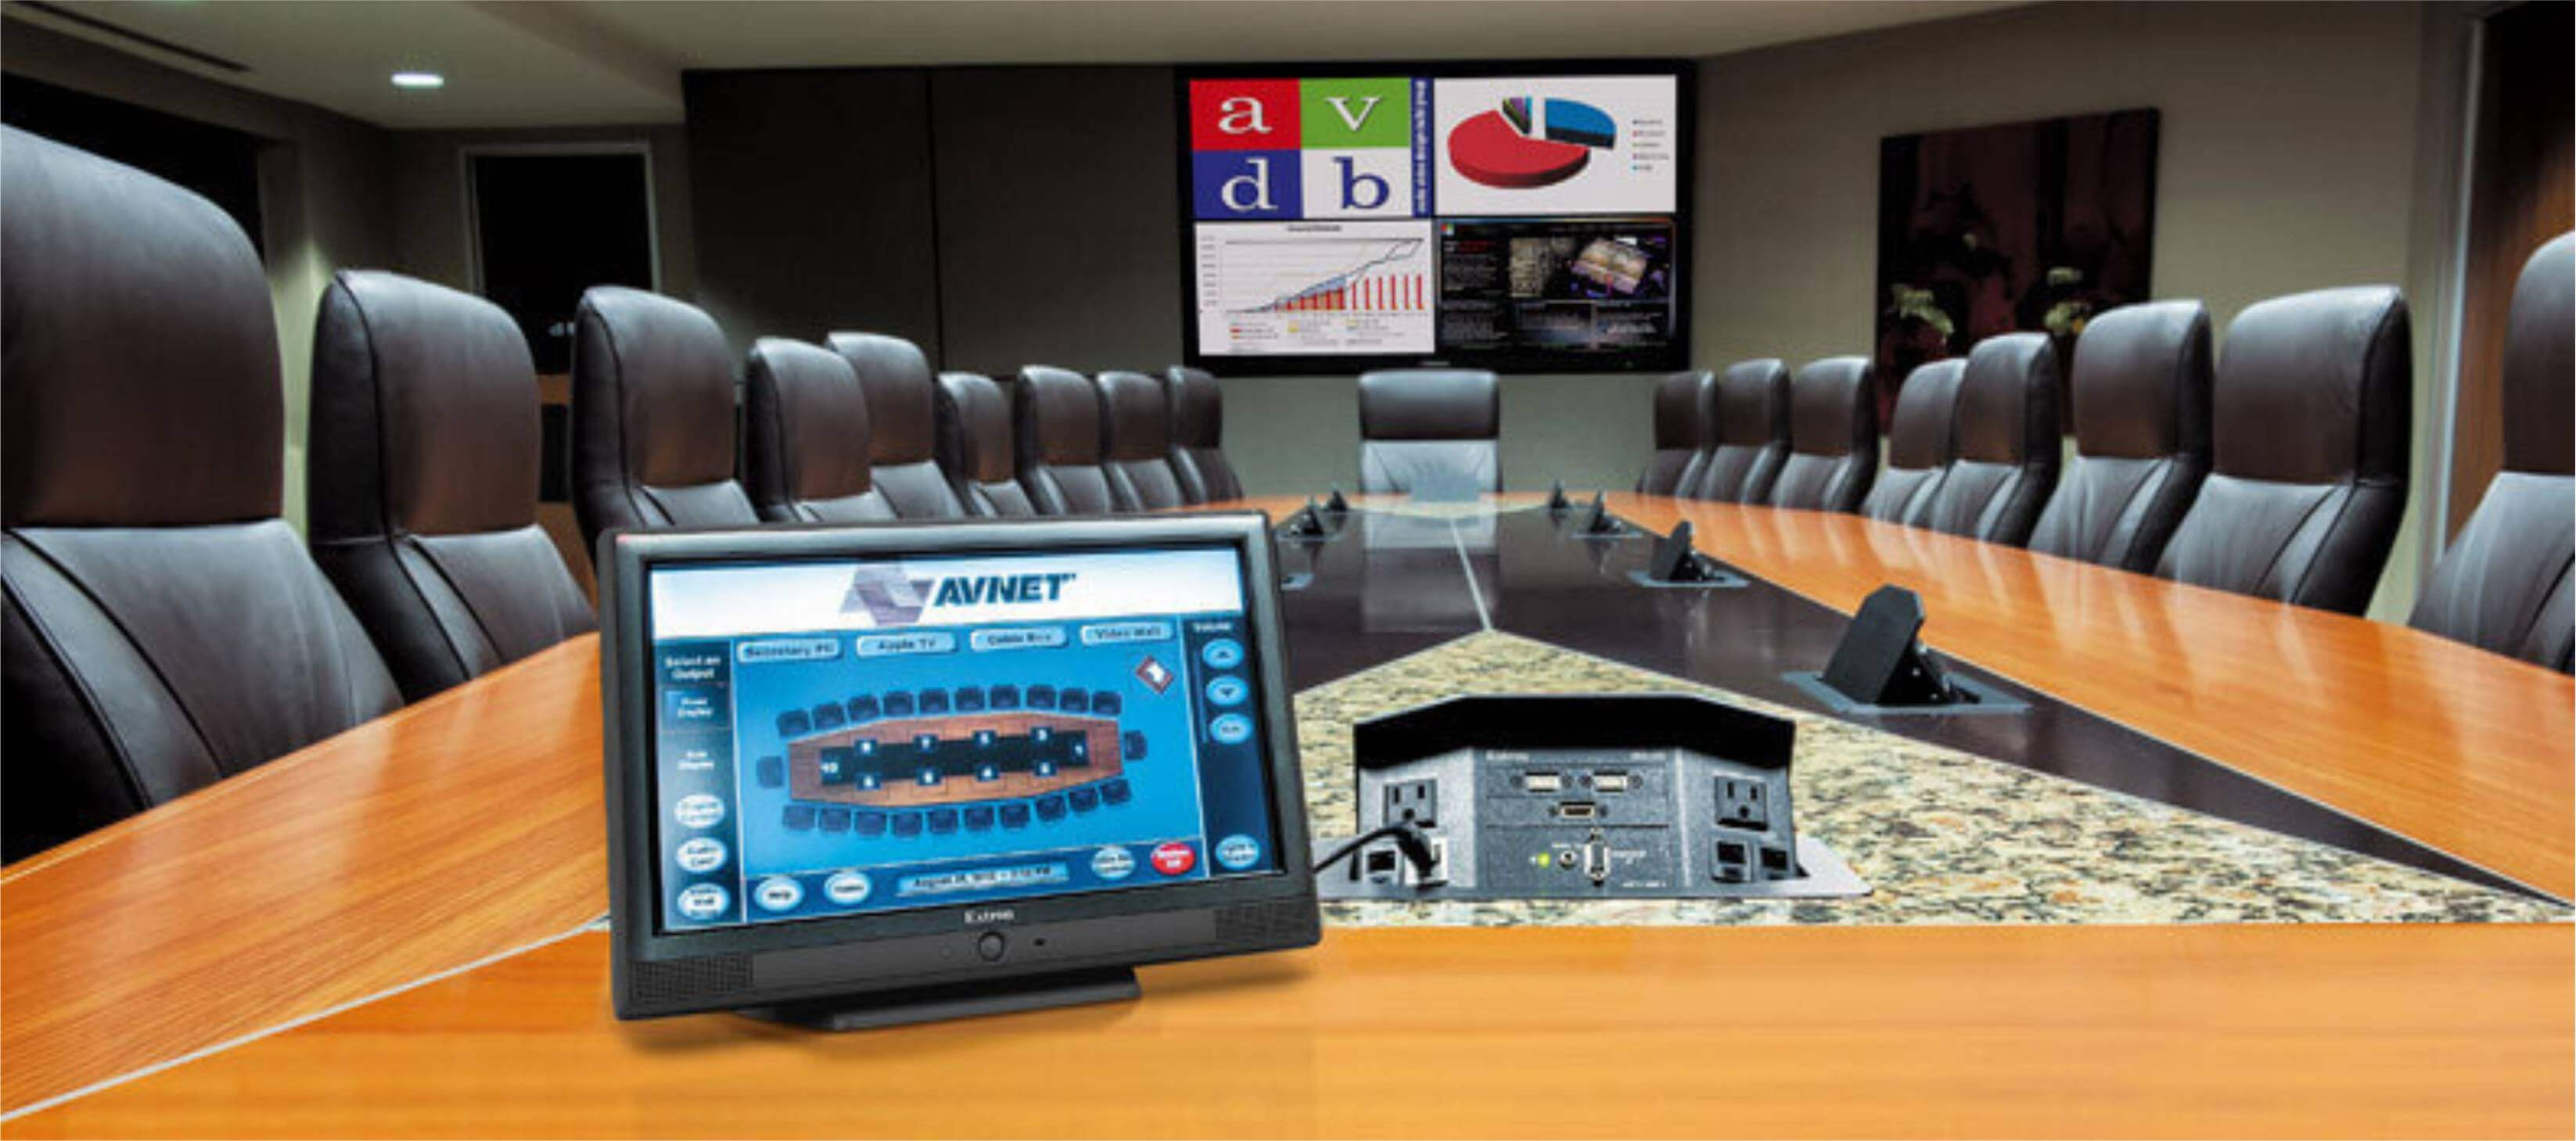 Meeting Room with AV Control